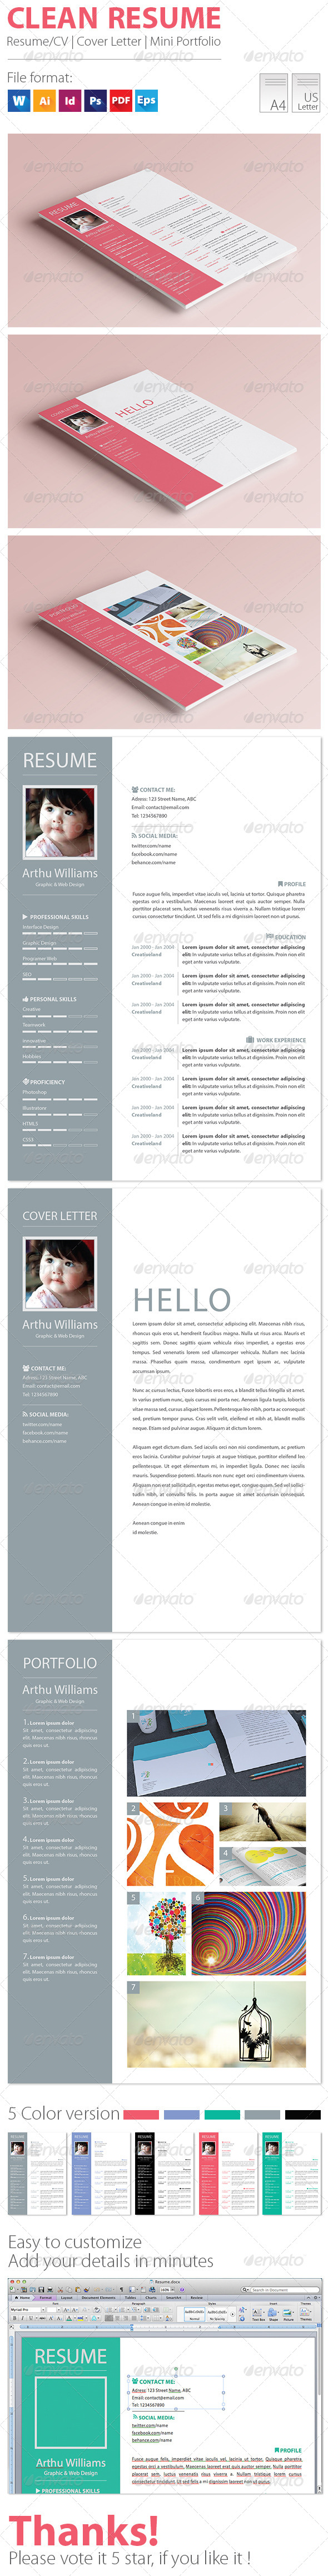 GraphicRiver Clean Resume 7778694